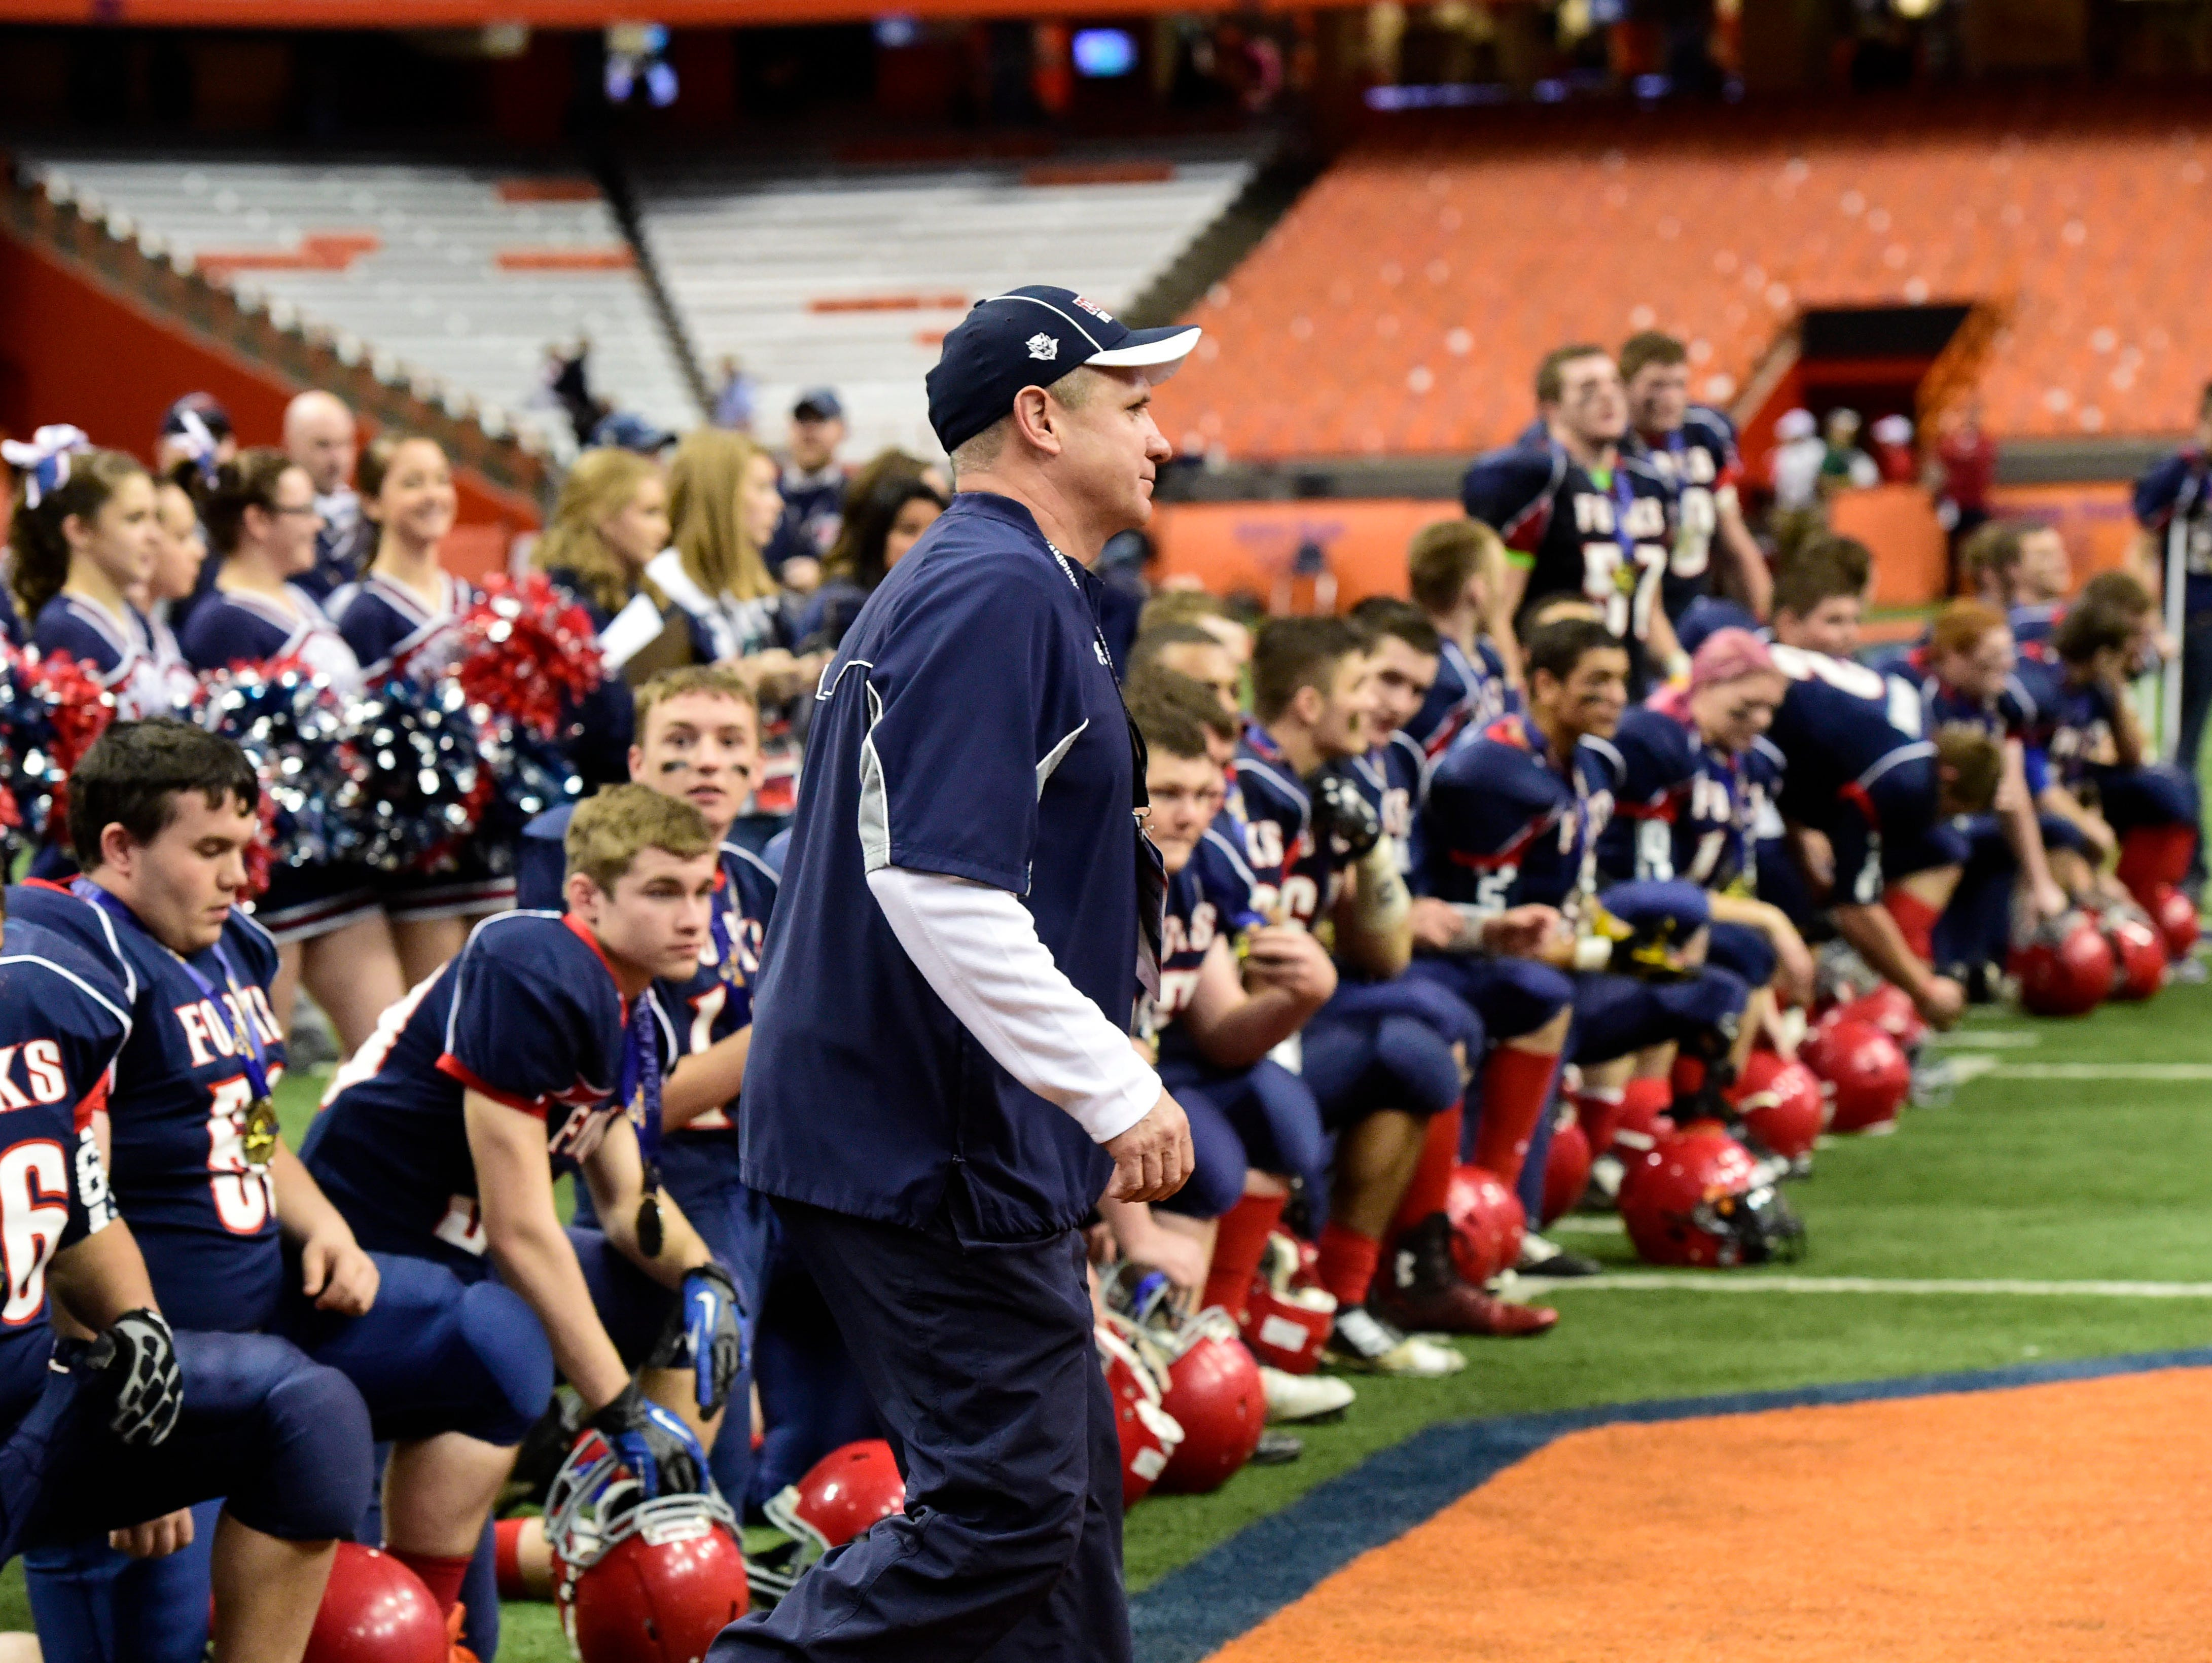 Chenango Forks head coach David Hogan goes to receive the trophy following the Blue Devils' Class C state championship on Nov. 29